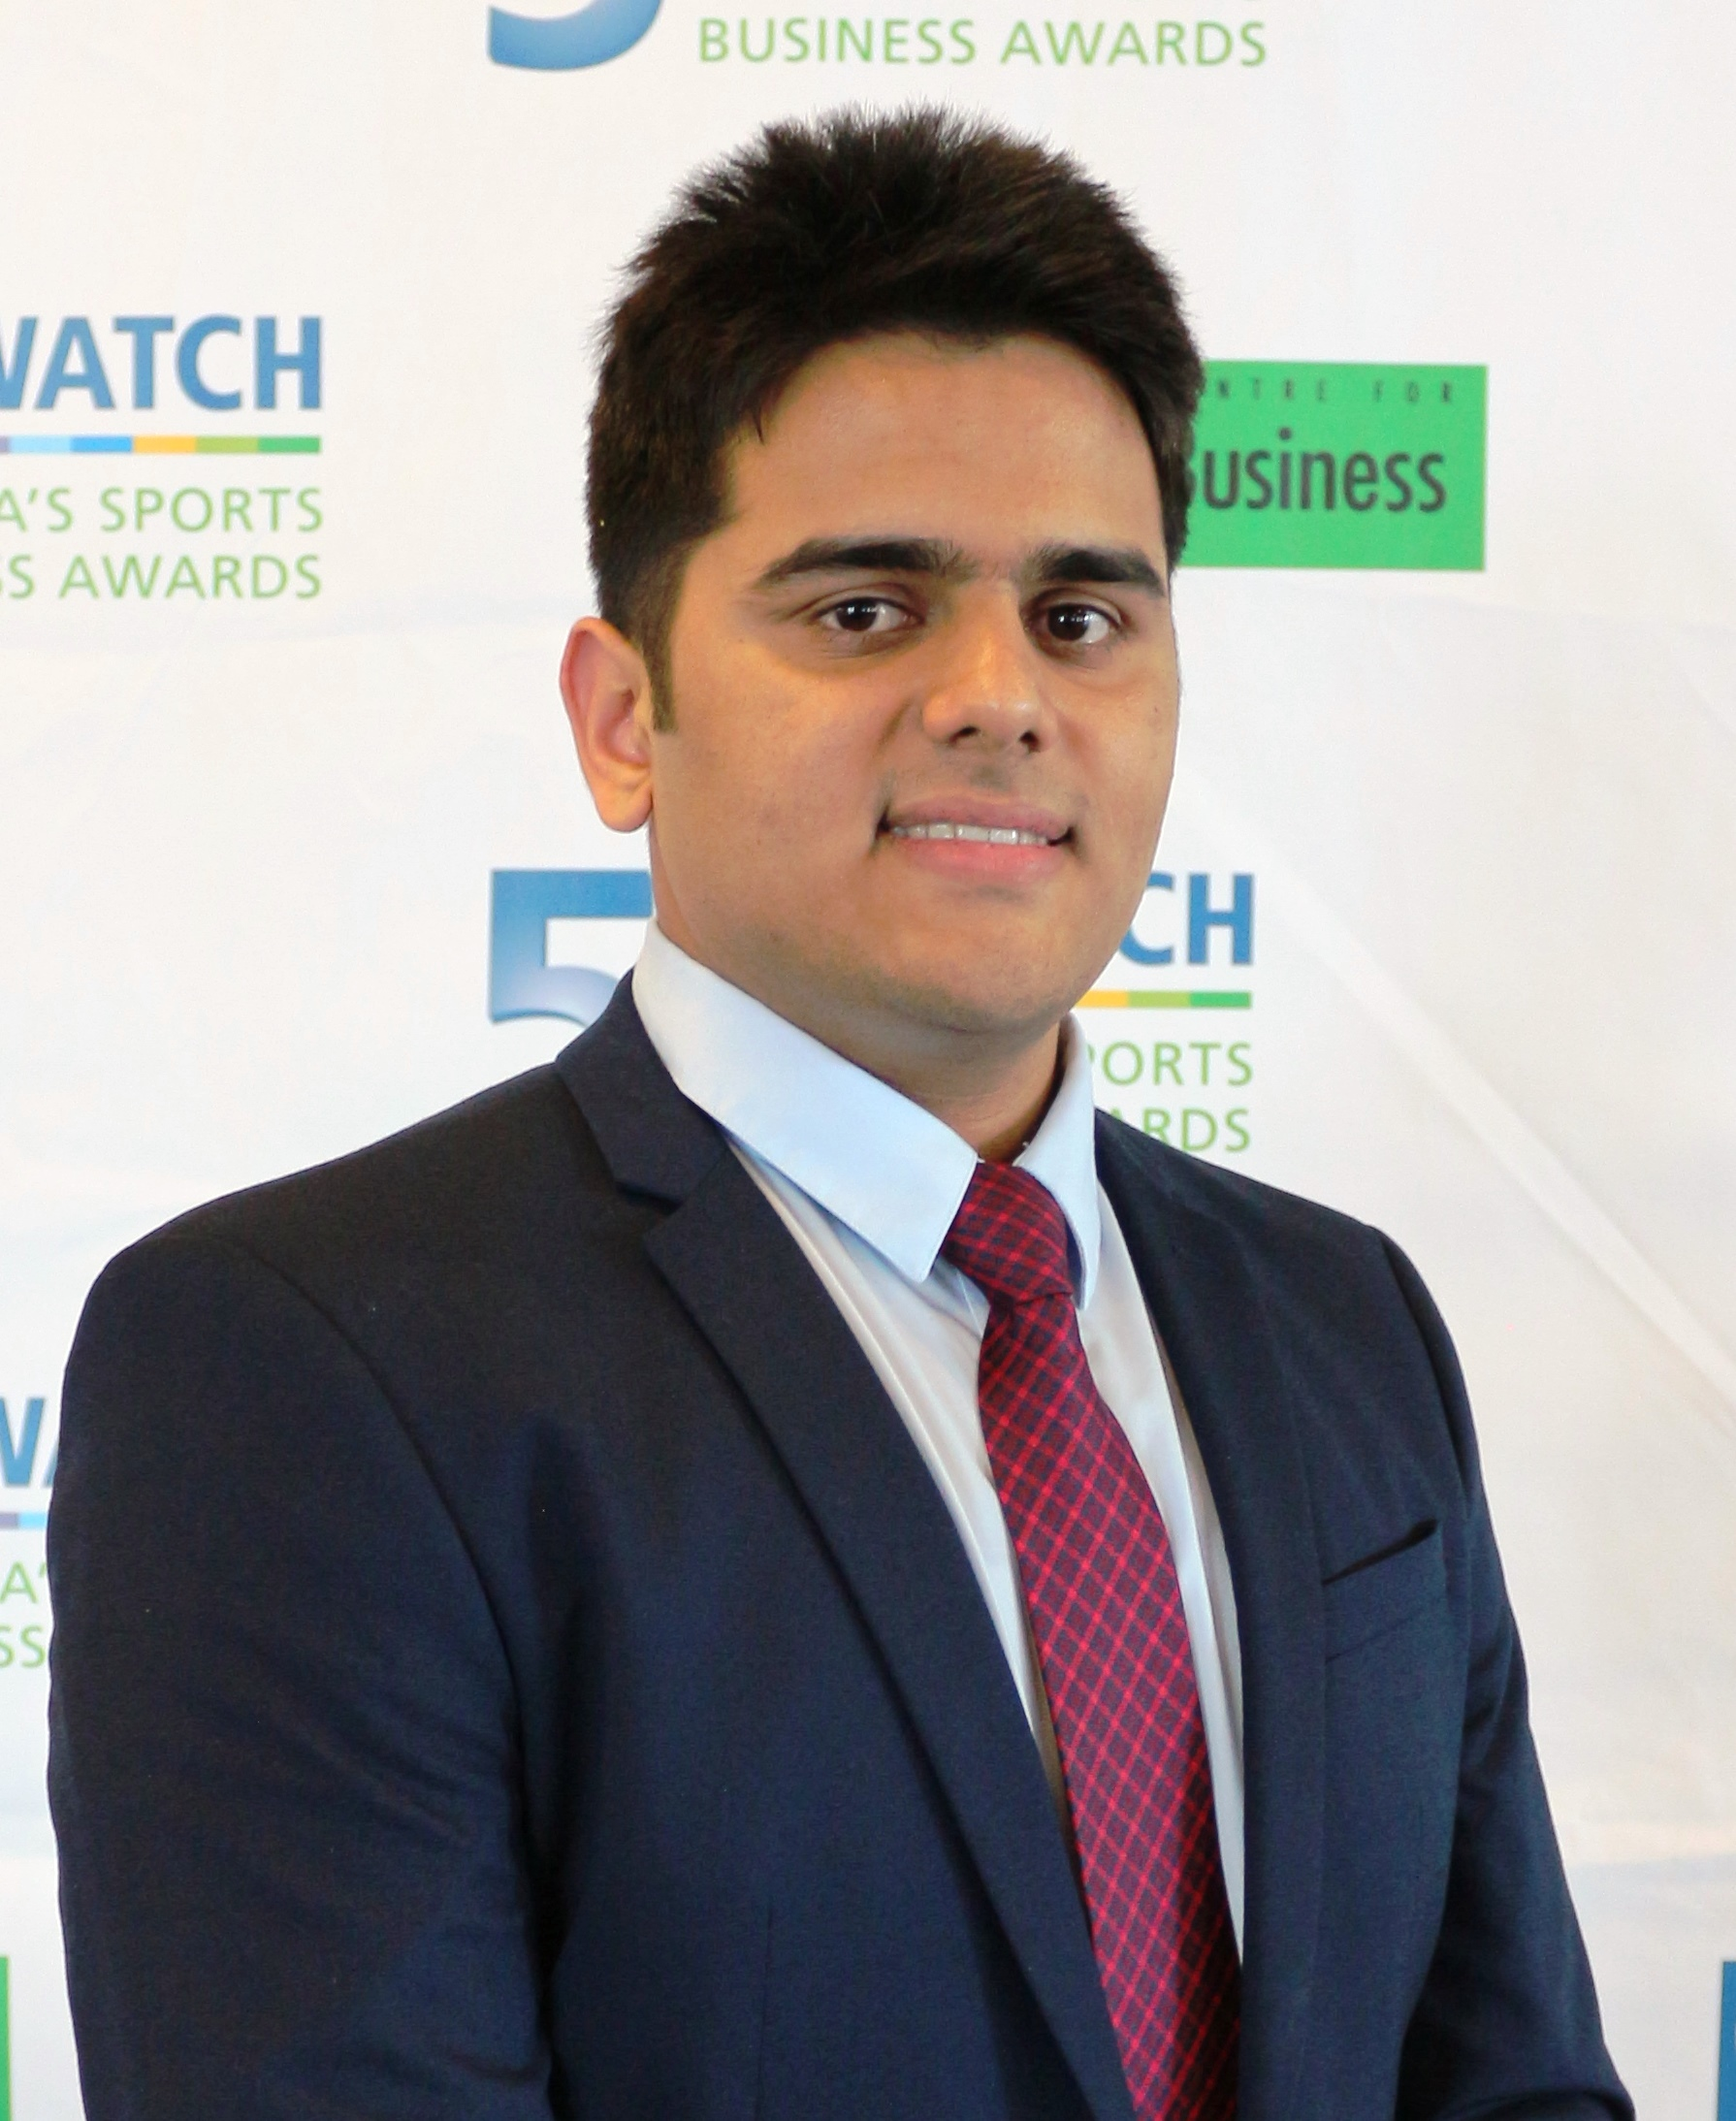 Divesh Kanwar - Food Service Assistant Manager